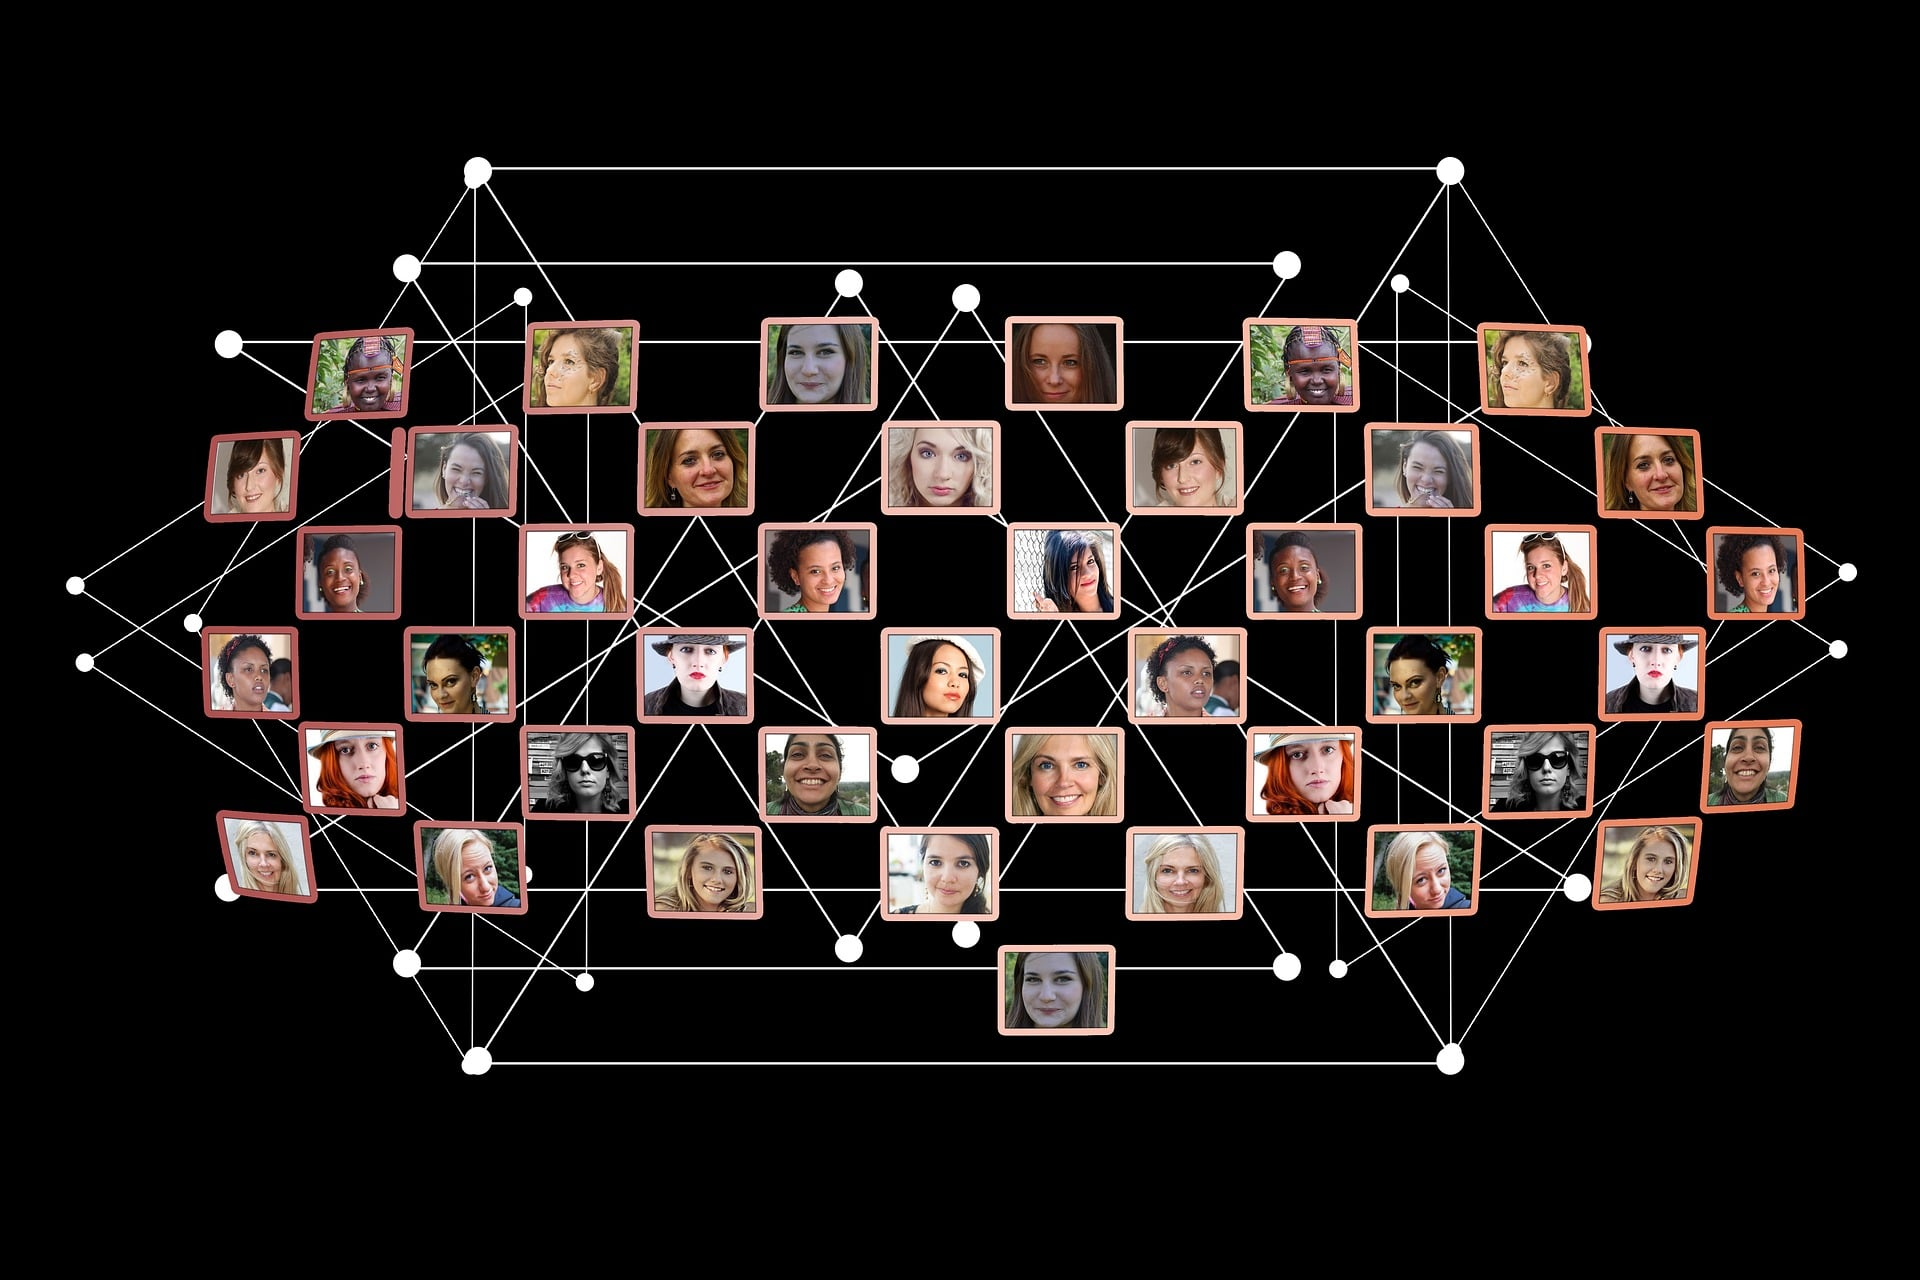 map-of-portraits-of-diverse-people